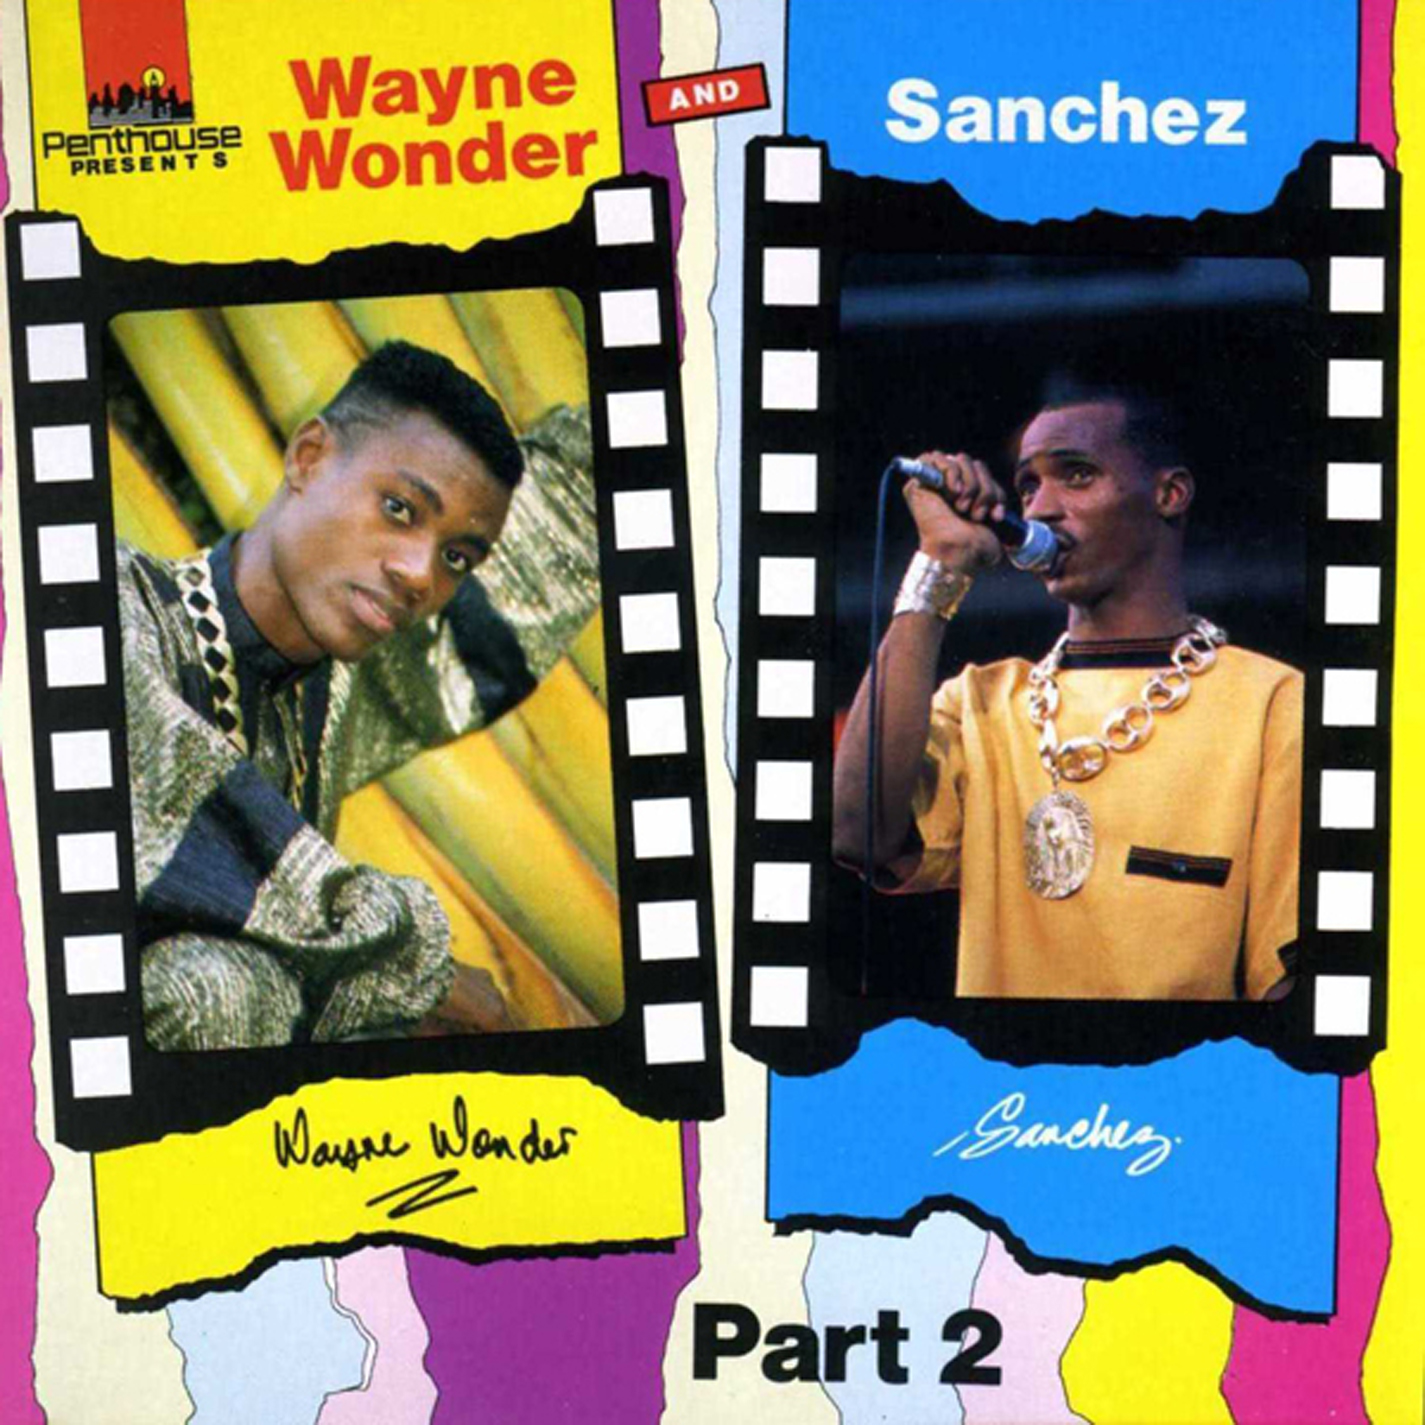 Wayne Wonder and Sanchez Part 2